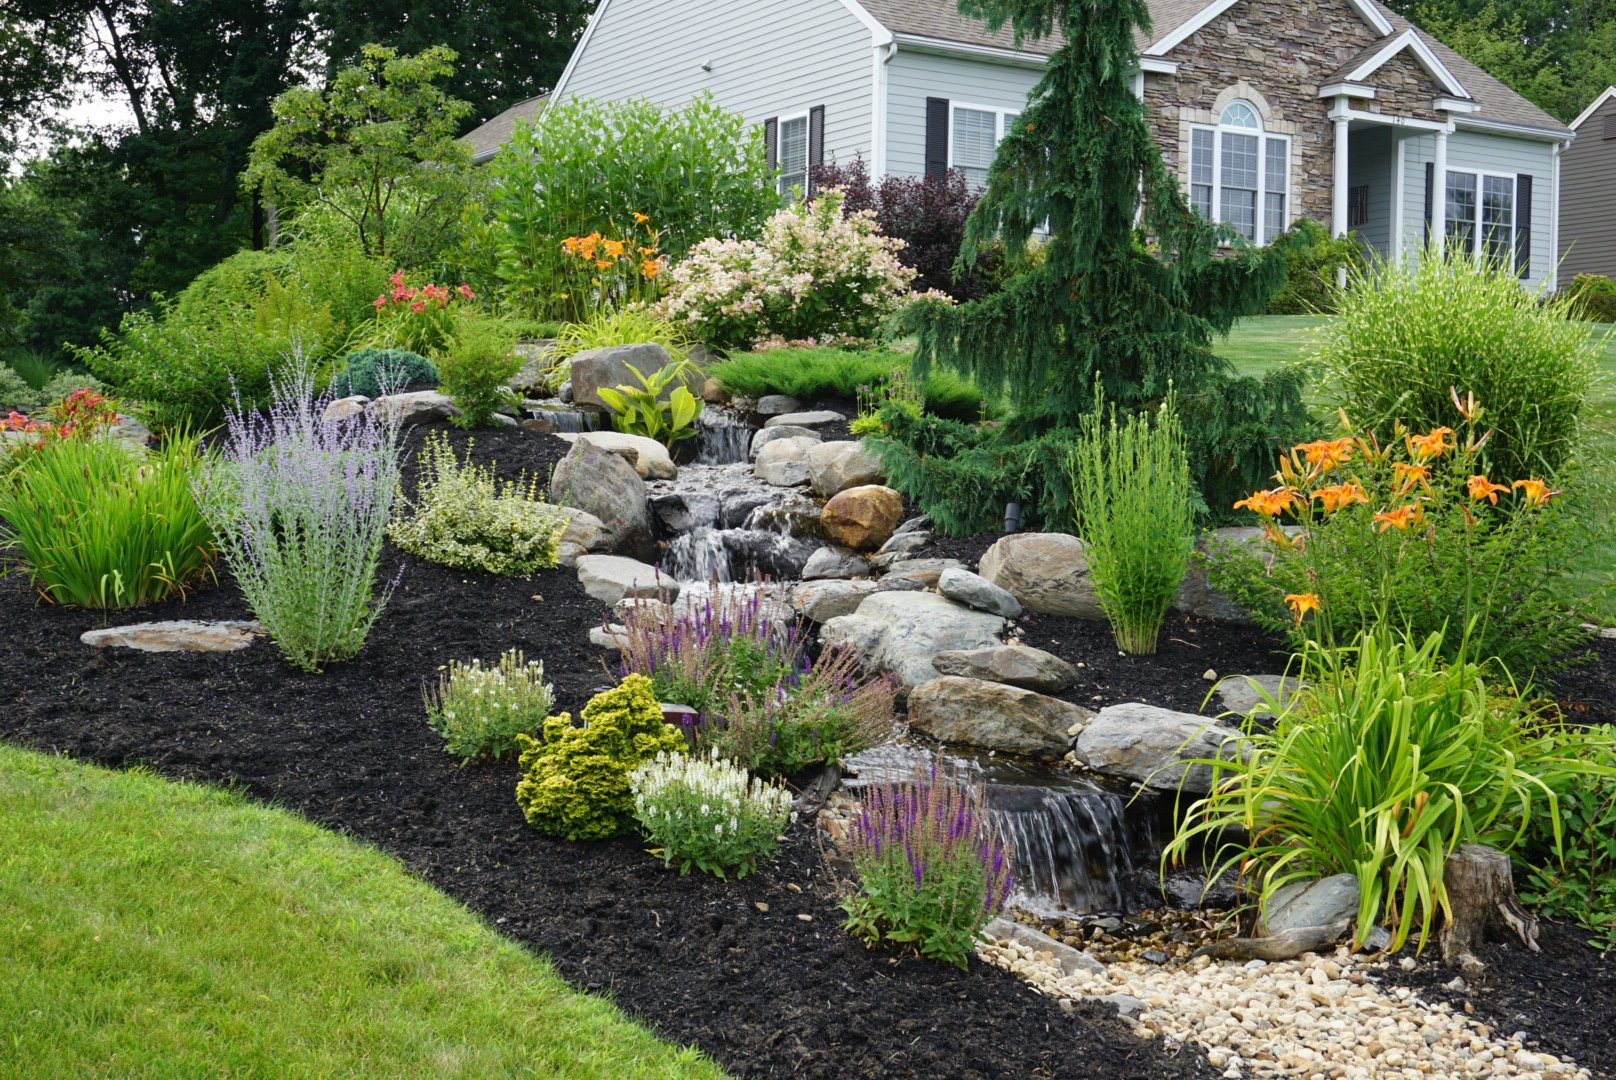 Be Creative in the Dead of Winter-Let's bring your landscaping ideas to life!